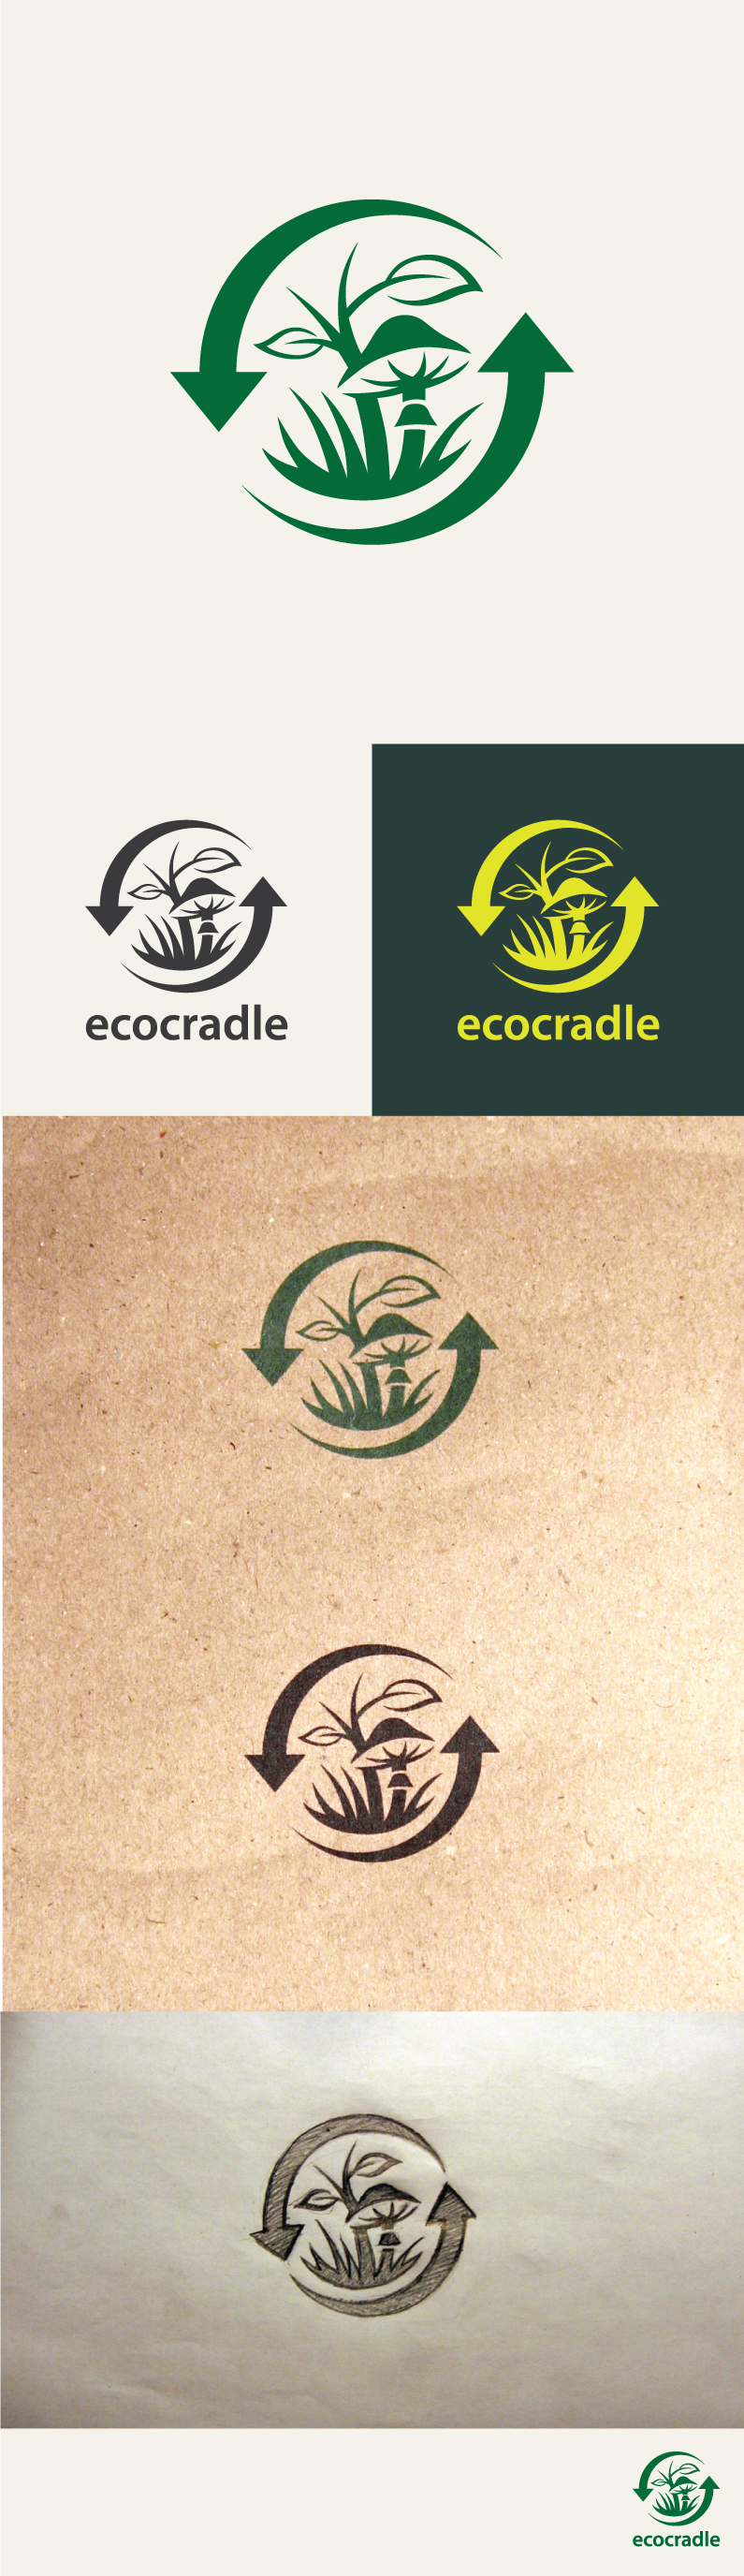 Icon Design by Valdis Baskirovs for eco styrofoam replacement,  logo stamp for product - Design #48260